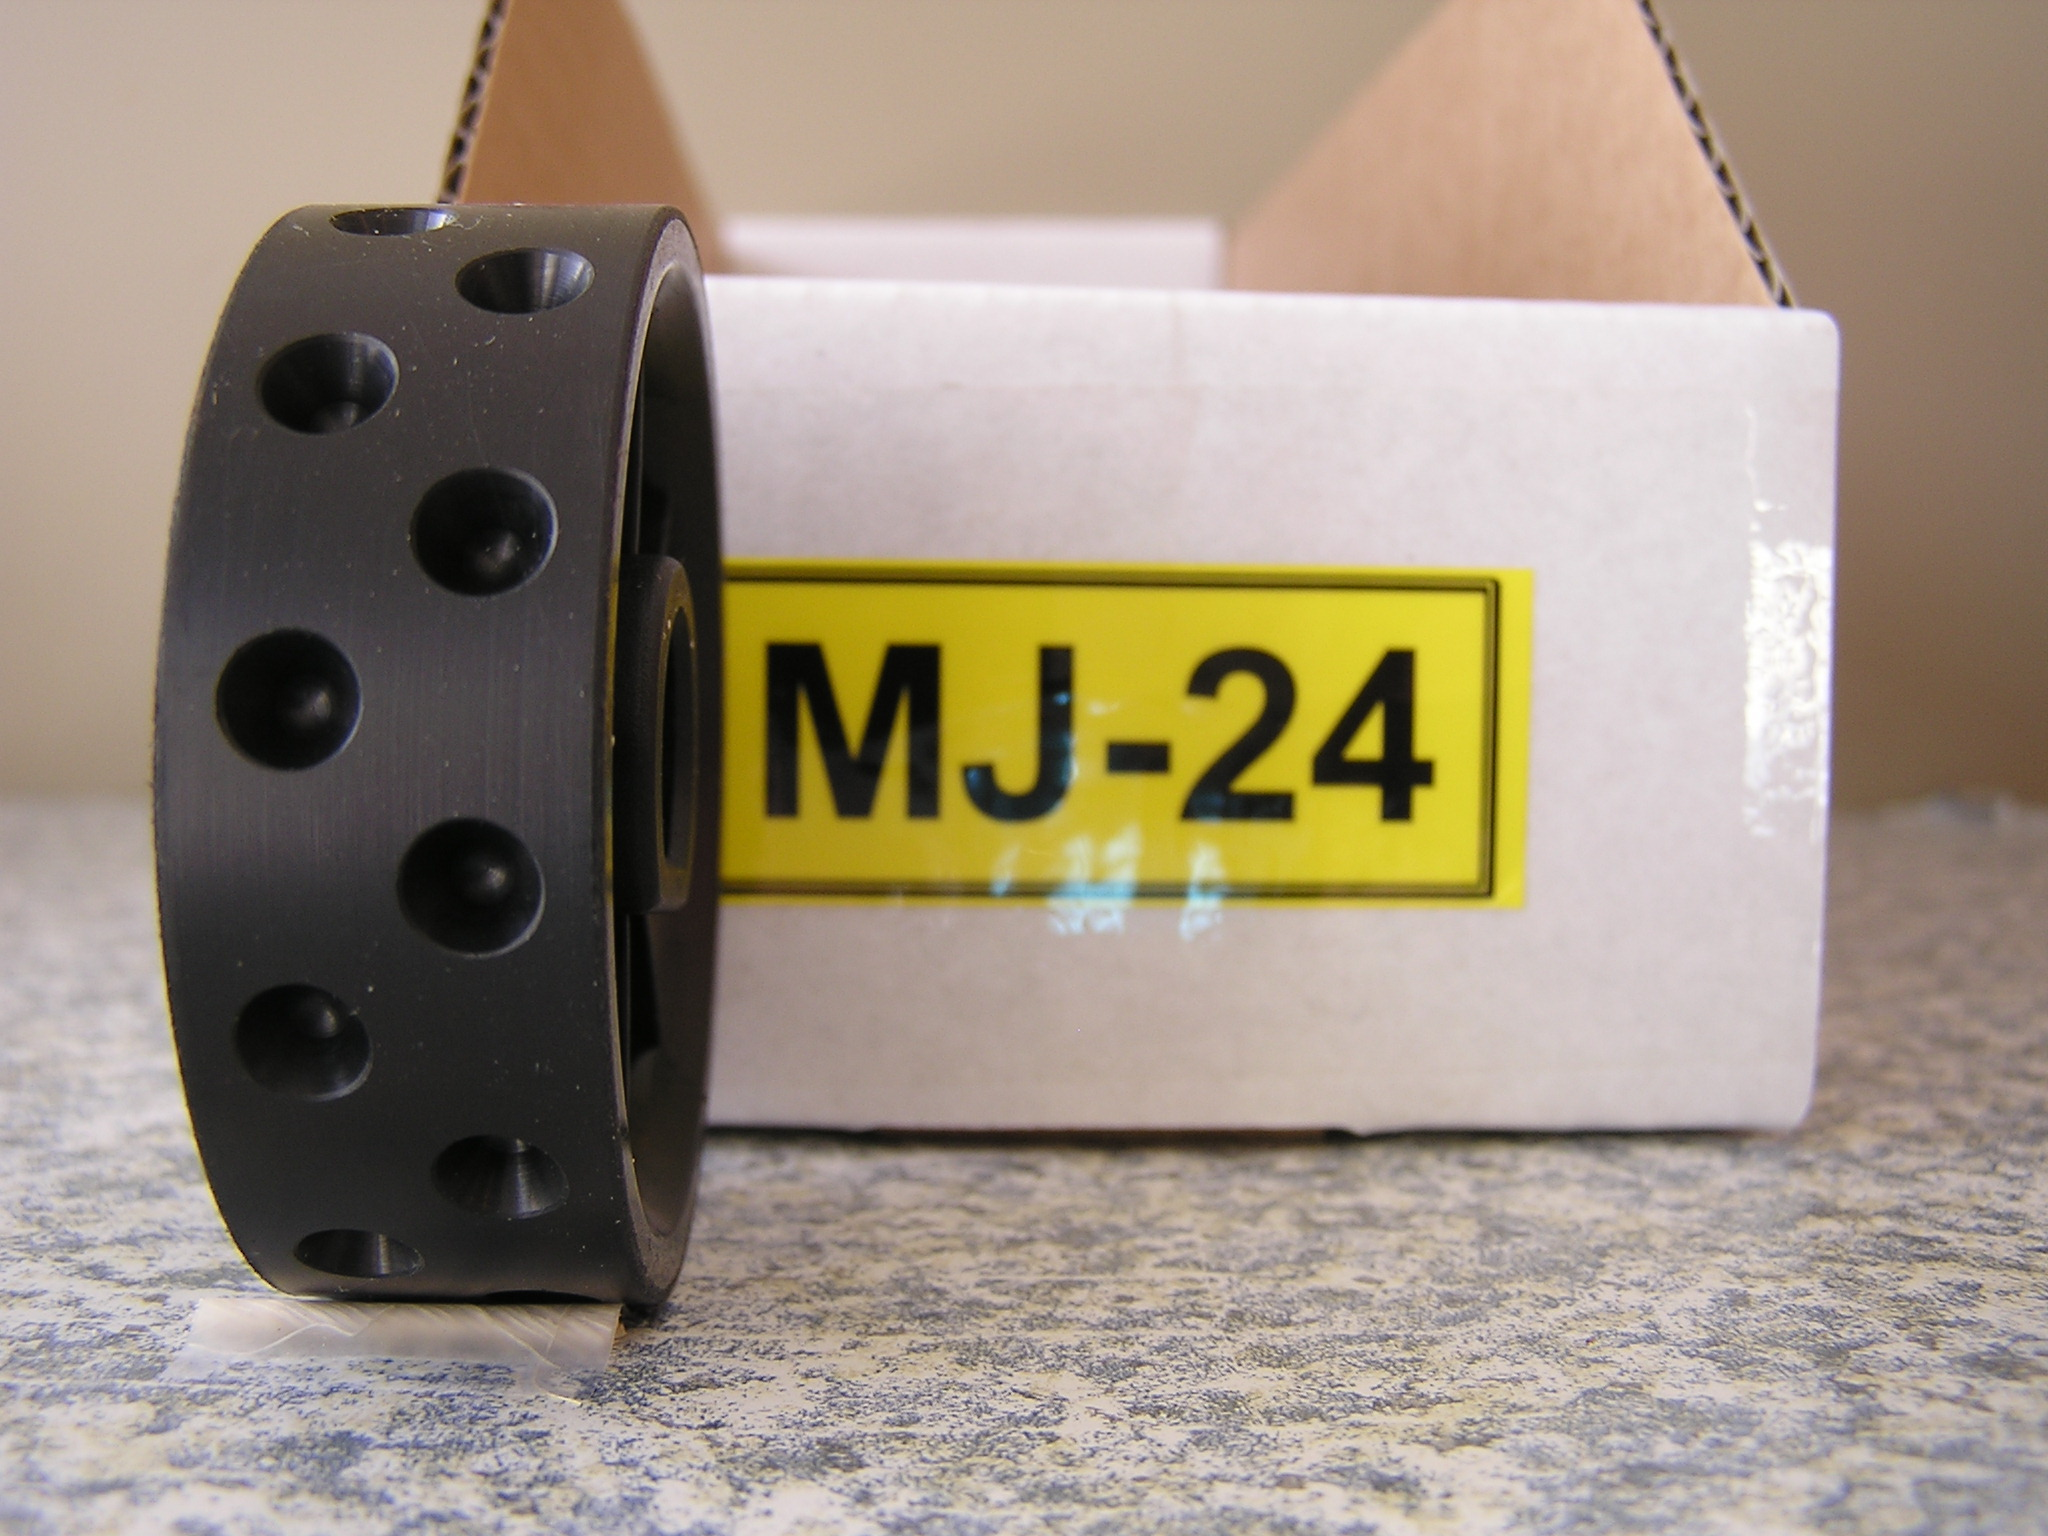 MJ-24 Roller for Jang Seeder, 6 mm, Deeper Slot, 24 Slots in the Roller